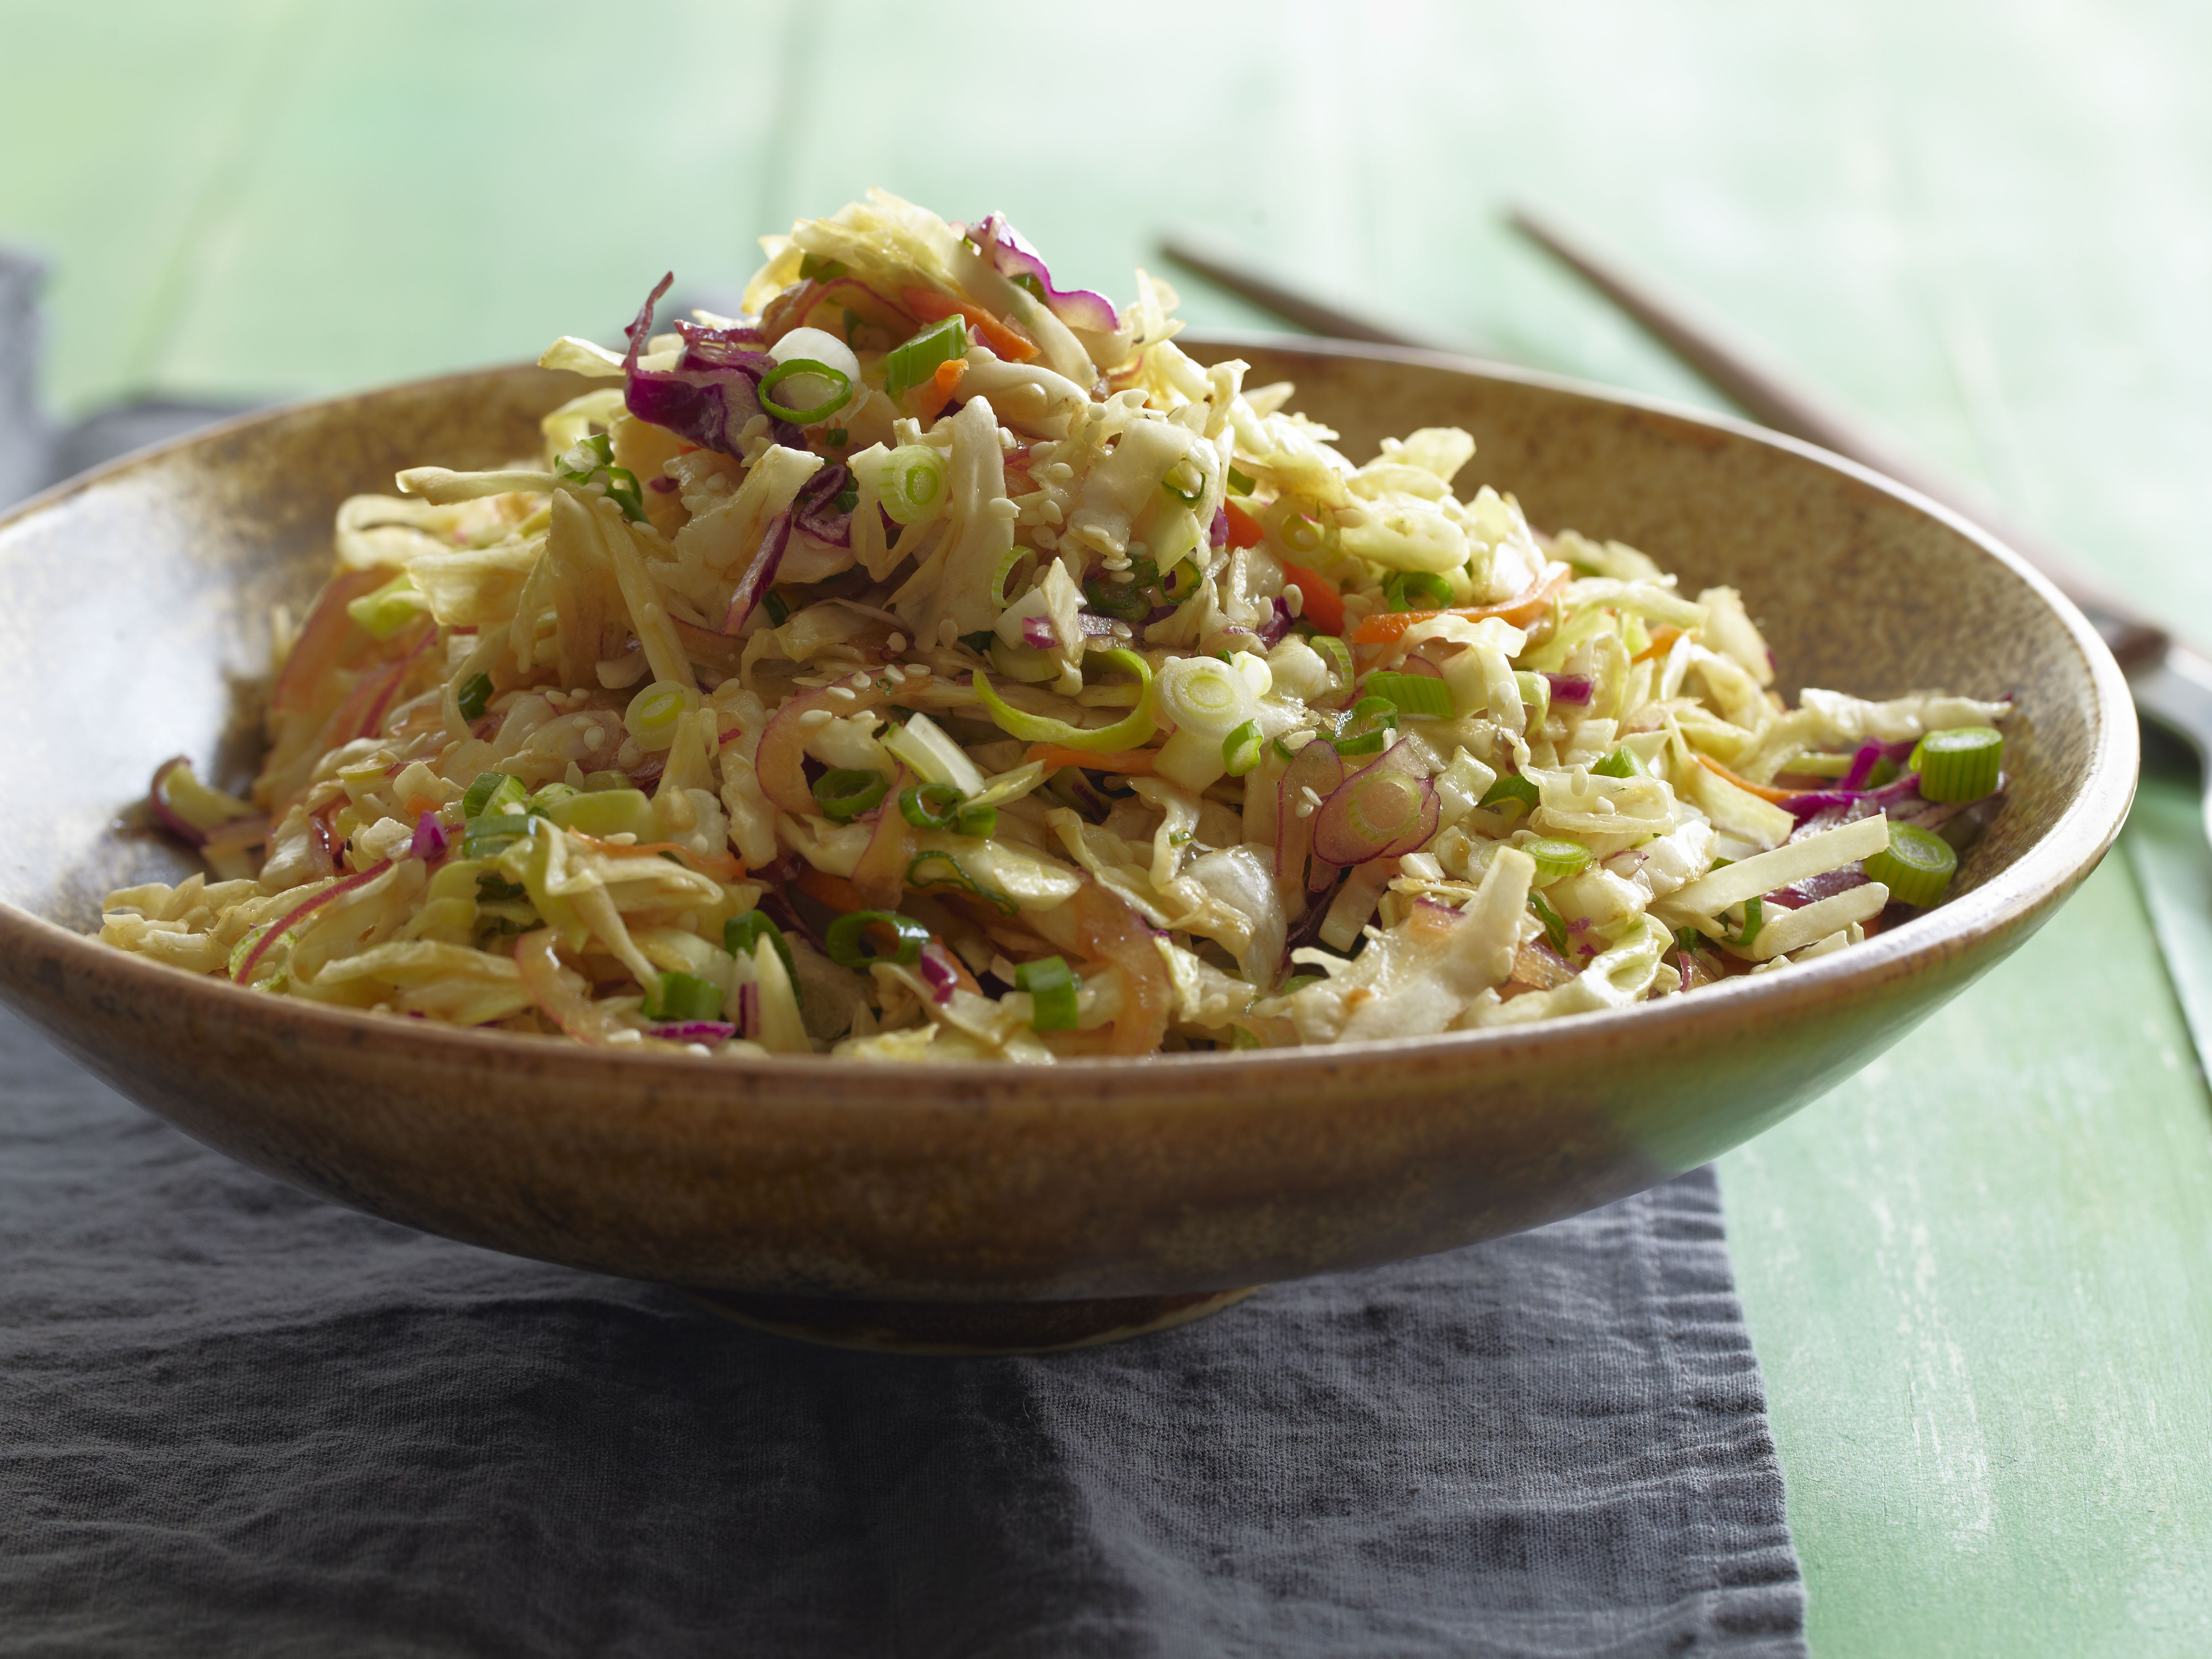 Asian style slaw recipe slaw recipes asian and recipes forumfinder Choice Image